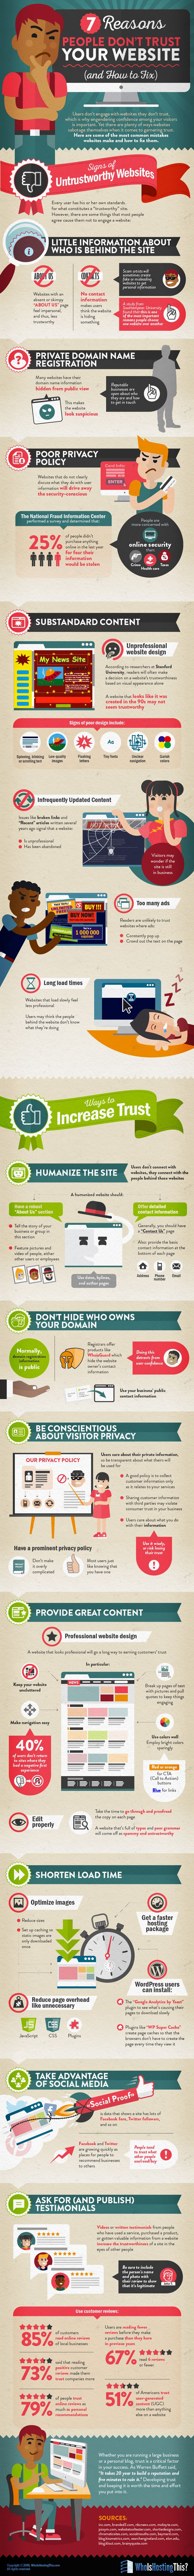 Reasons People Don't Trust Your Website (Infographic)